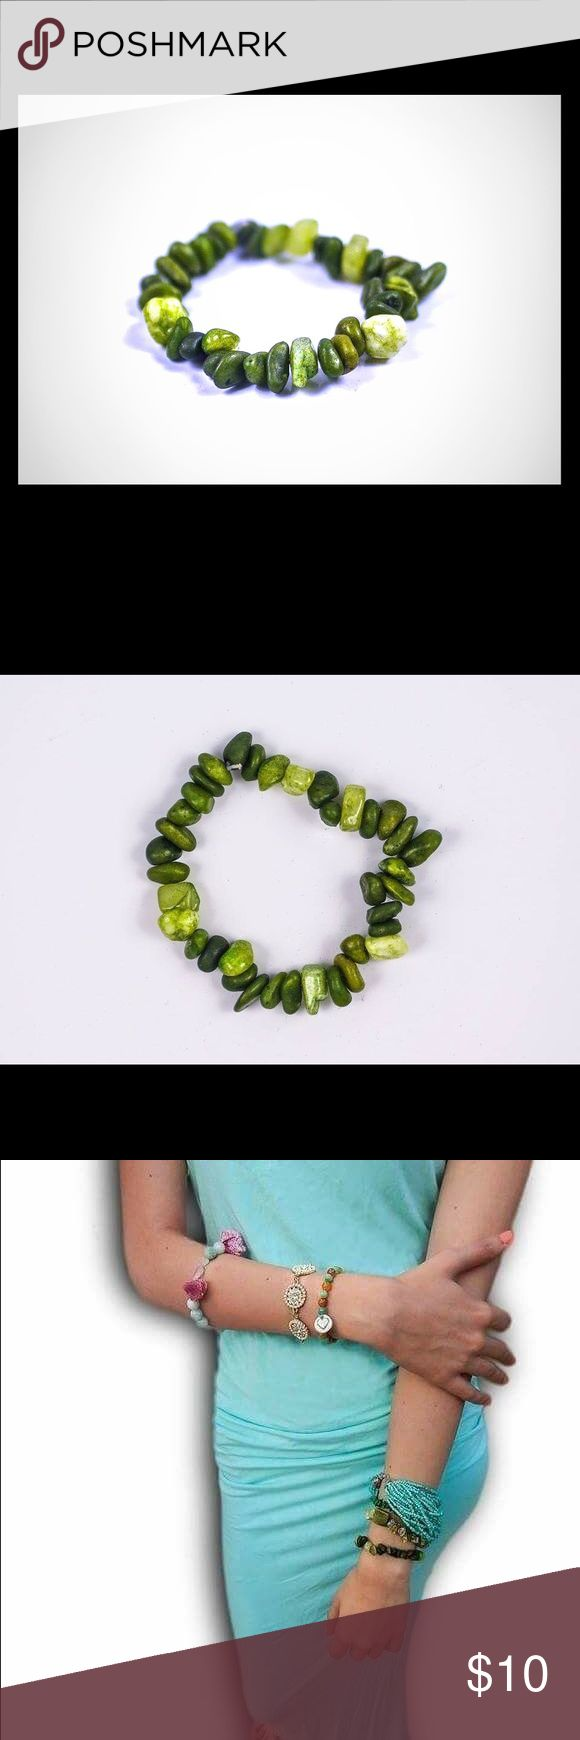 Genuine Green Quartz Healing Stone Bracelet Band NWT.  This semi-precious stone is most widely known to promote intuition, and transform negative energy into positive energy!!! Lala Motifs Jewelry Bracelets